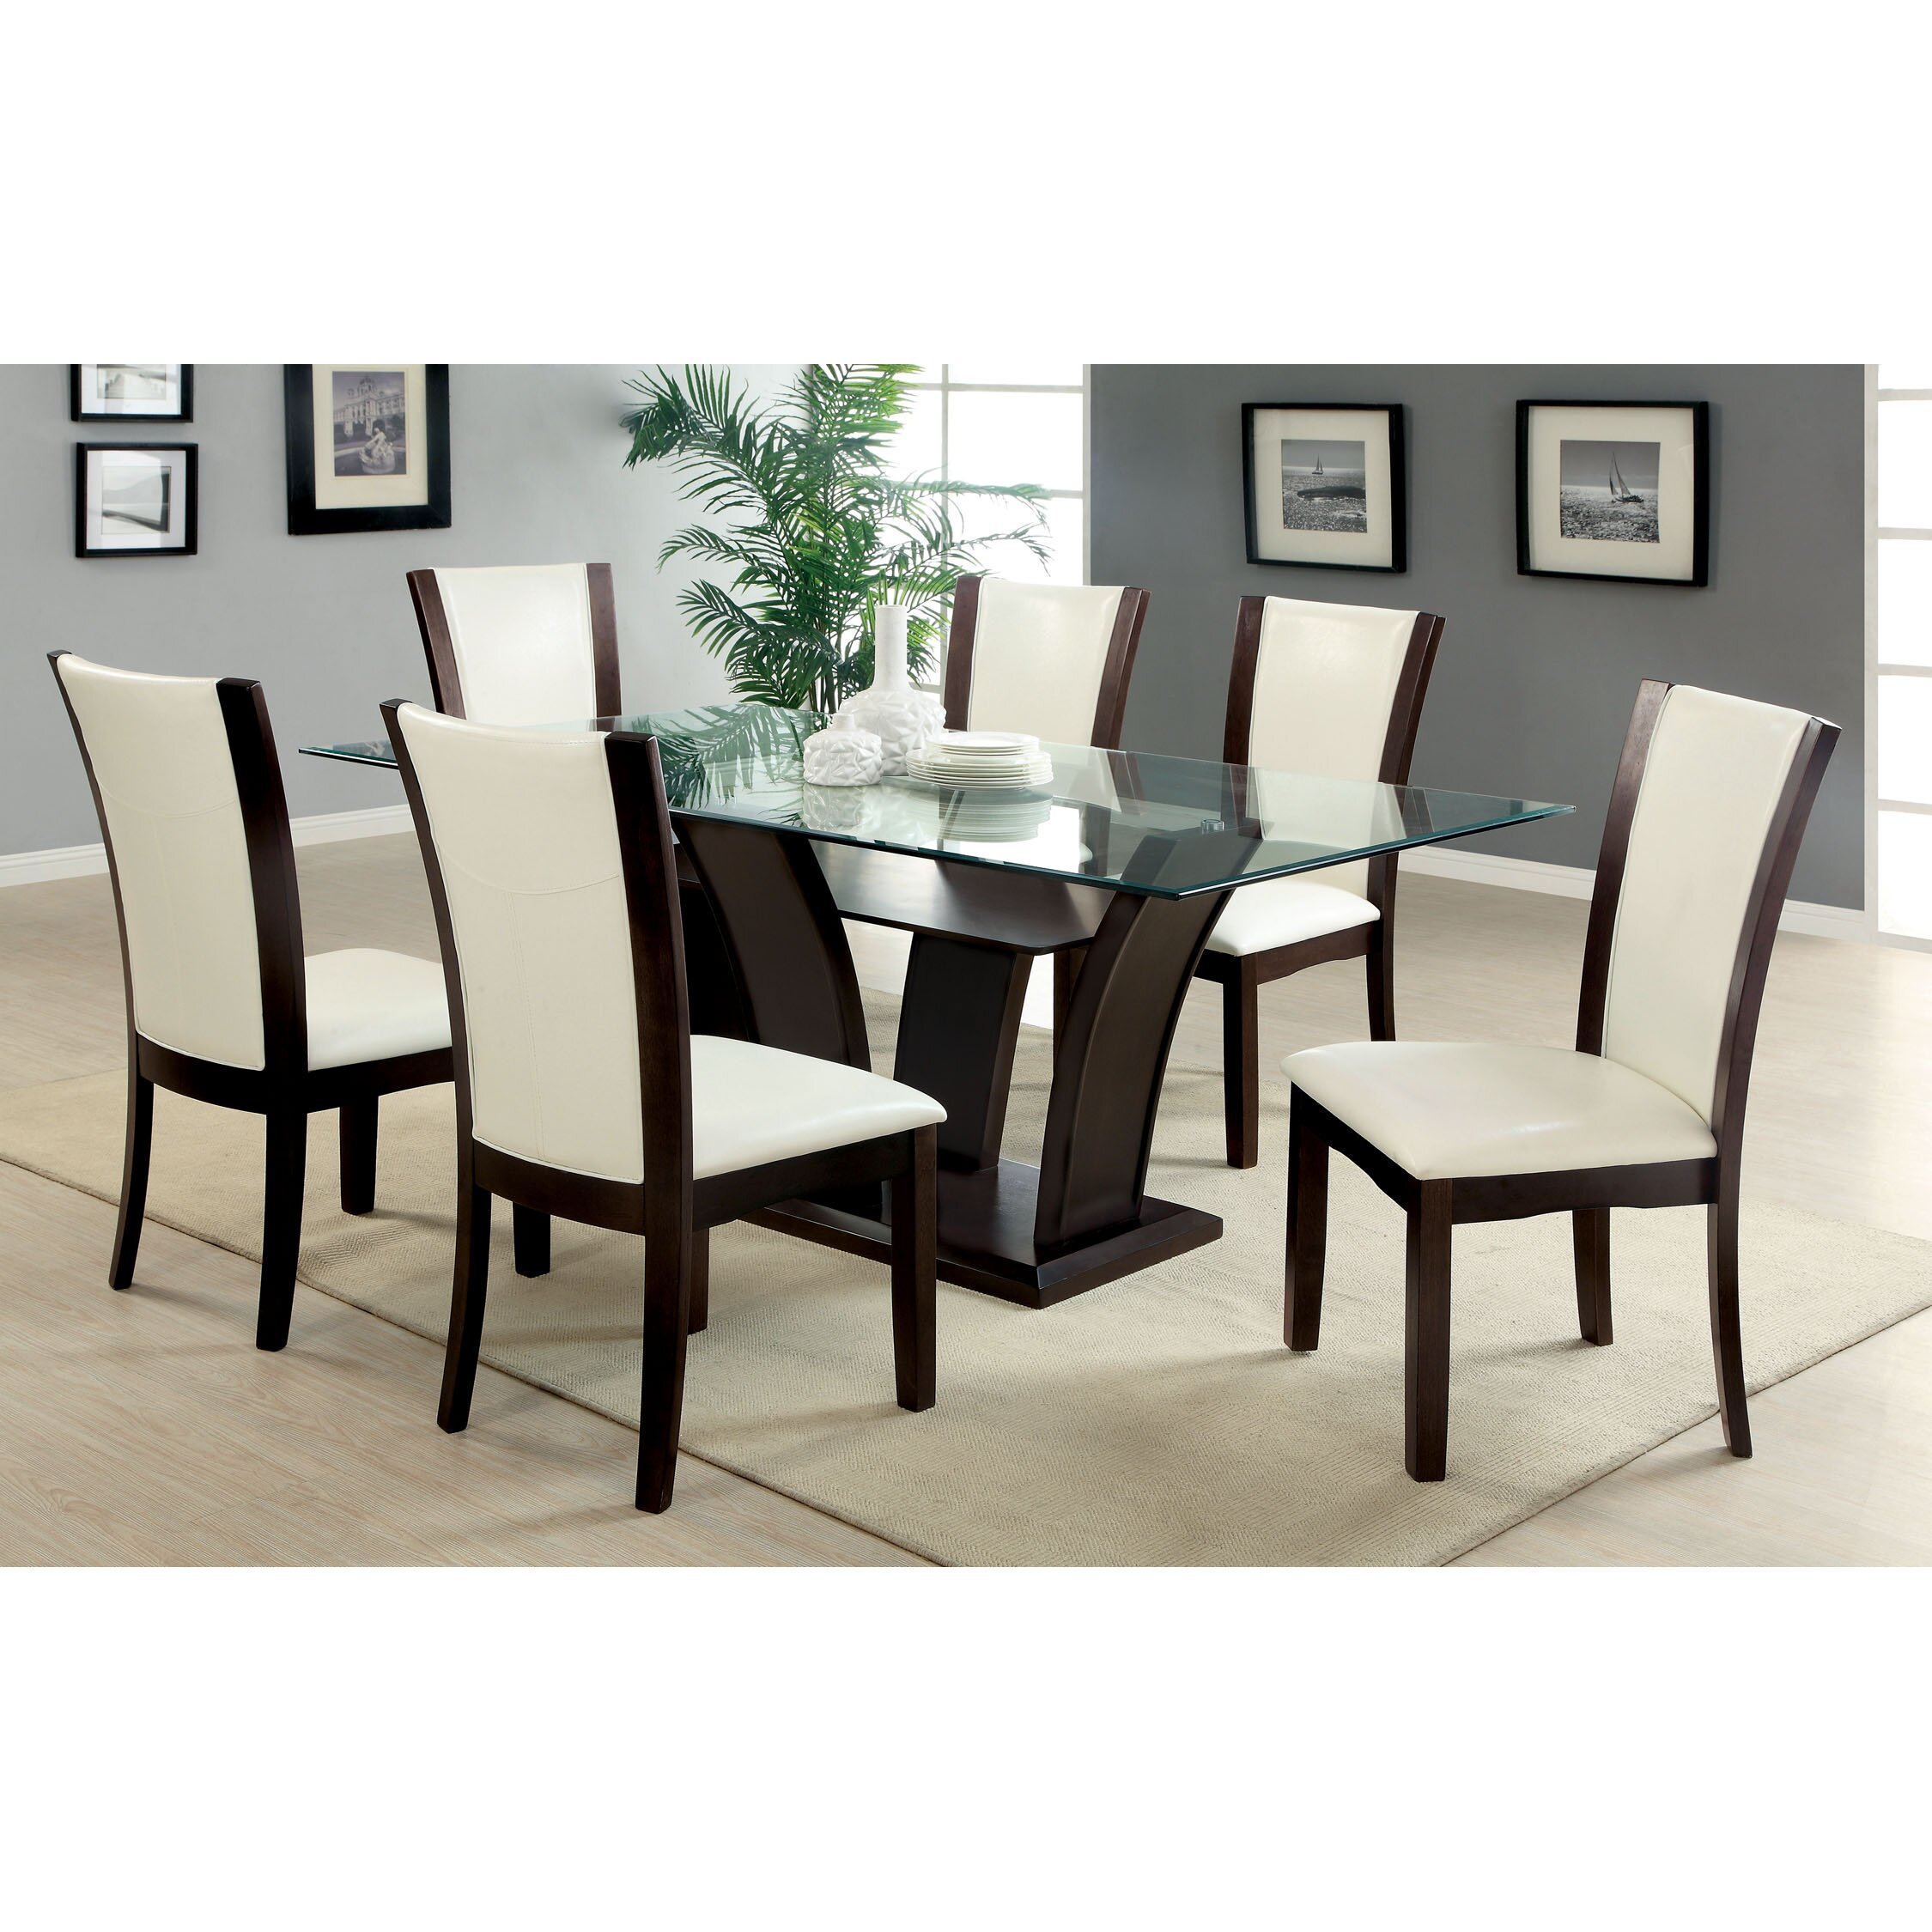 Hokku designs carmilla 7 piece dining set reviews wayfair for Dining room sets for 6